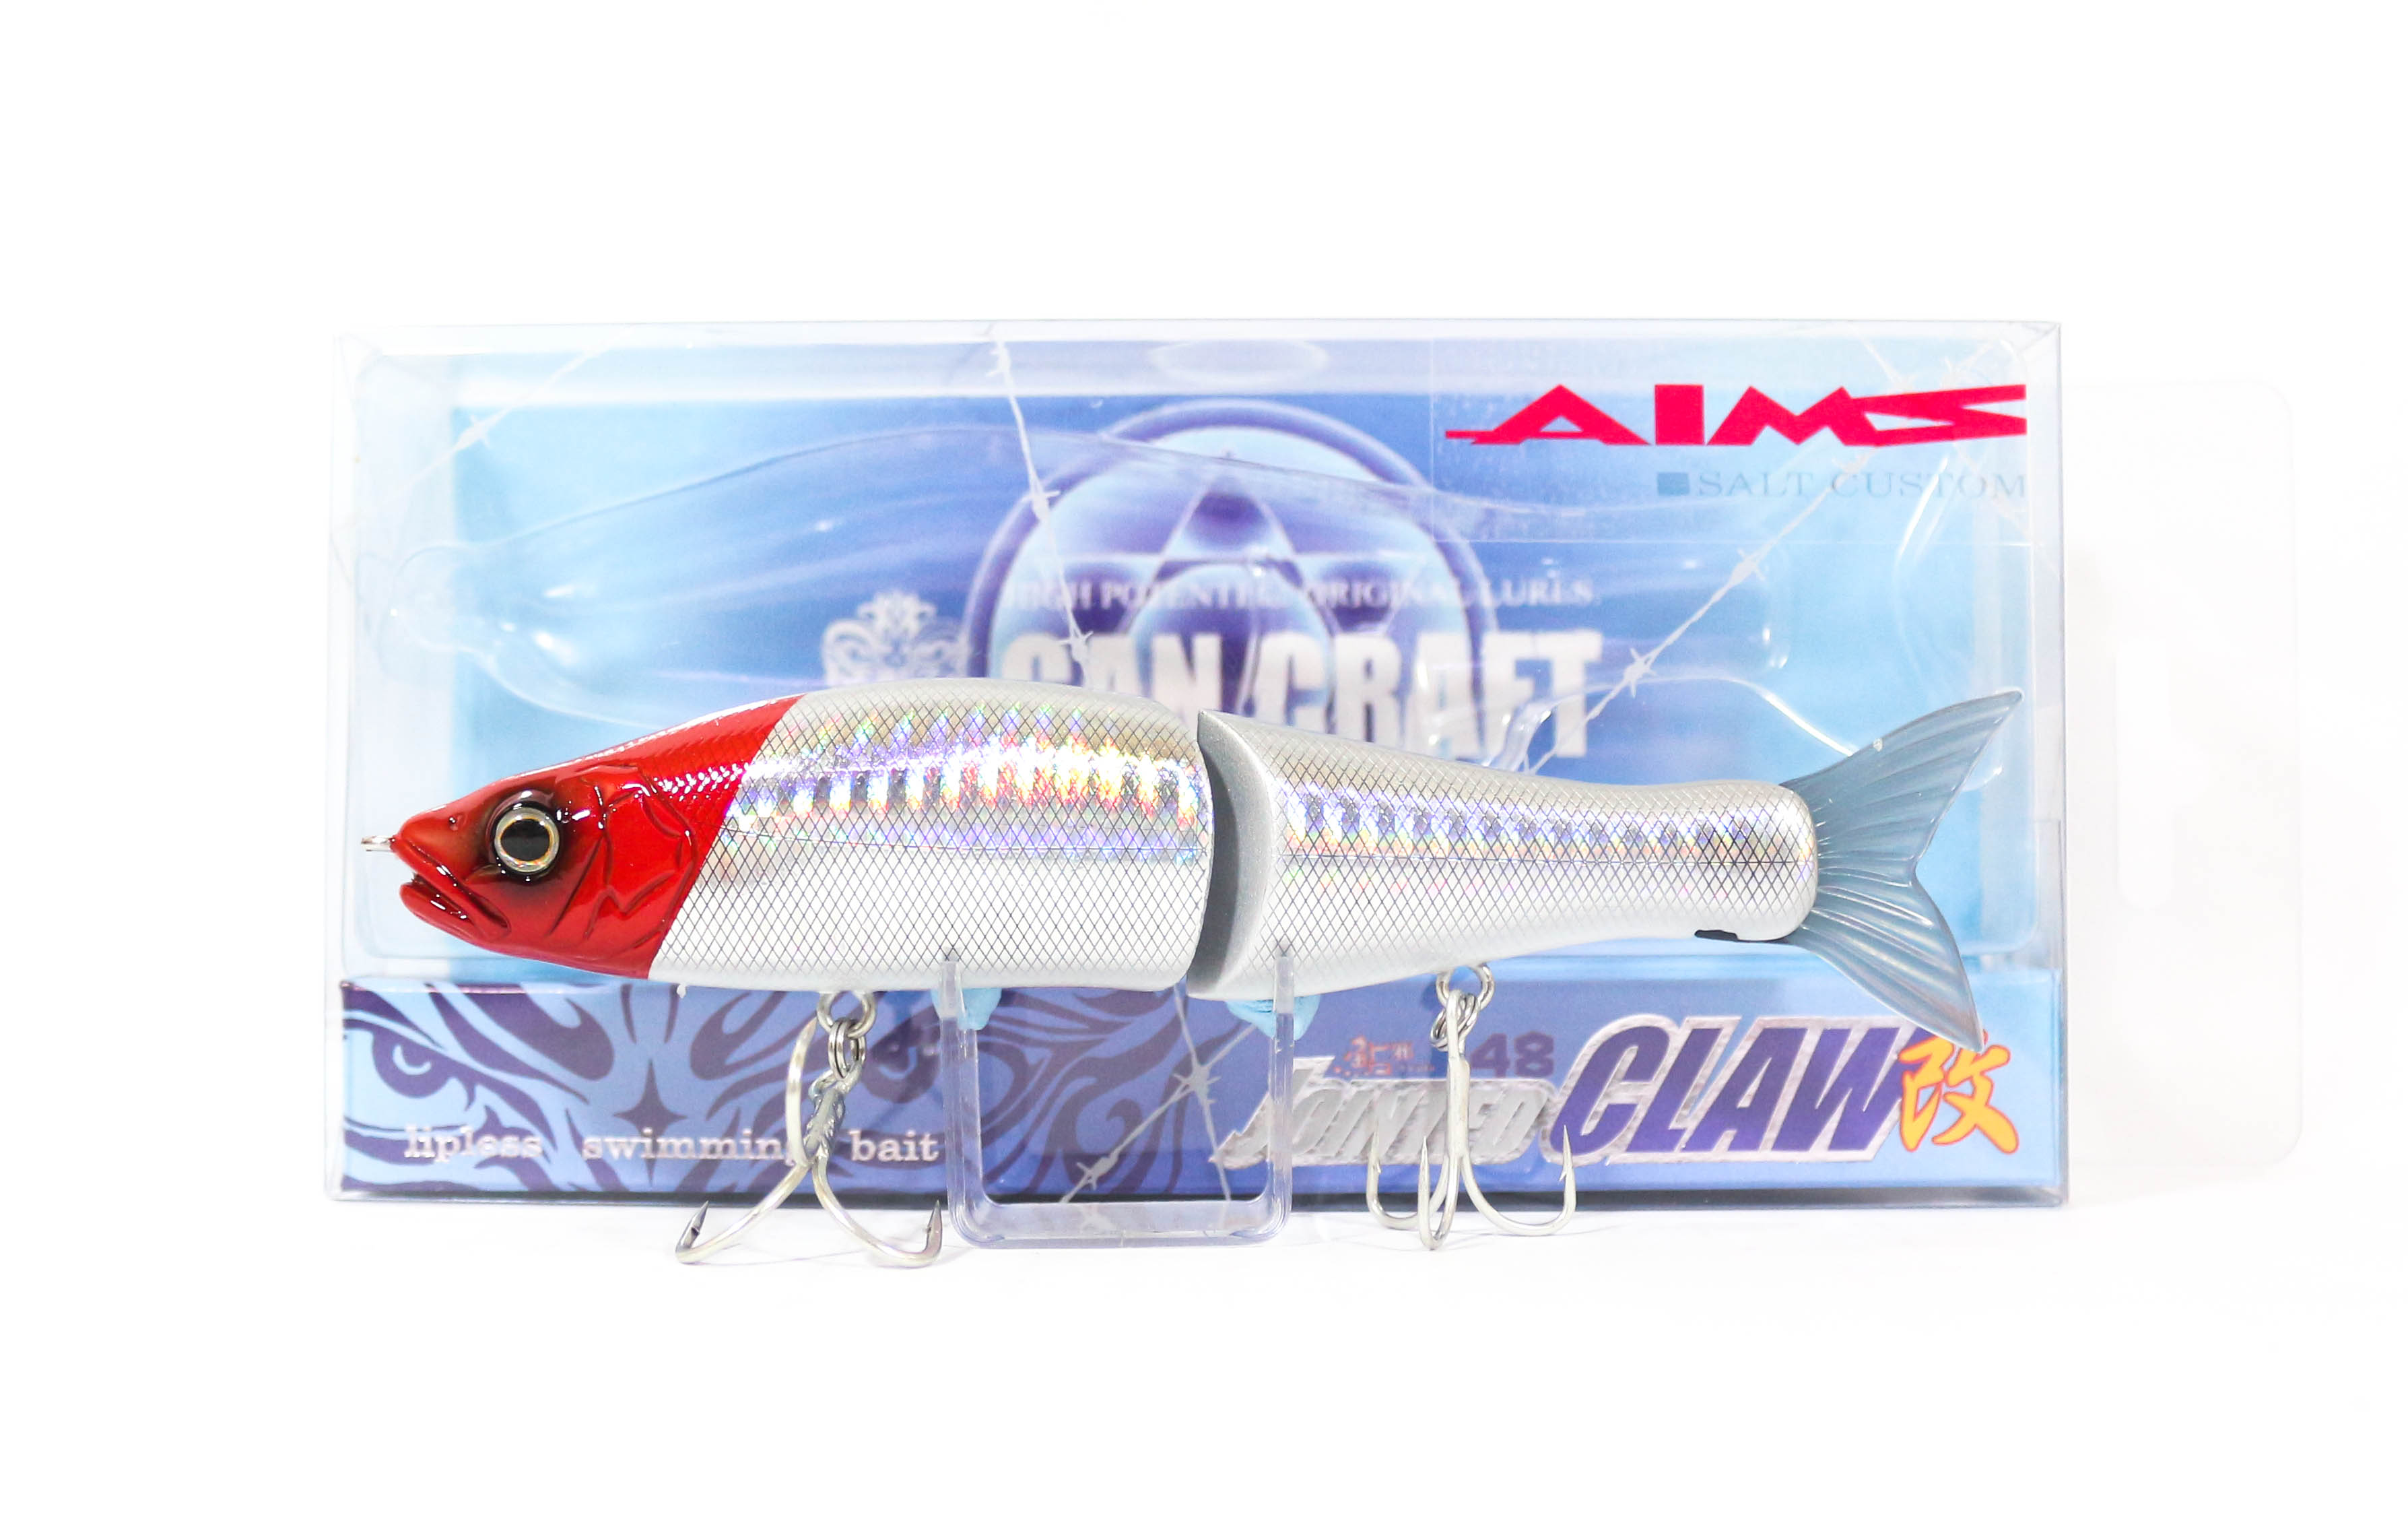 Gan Craft Jointed Claw 148S Salt Floating Jointed Lure AS-09 (0090)